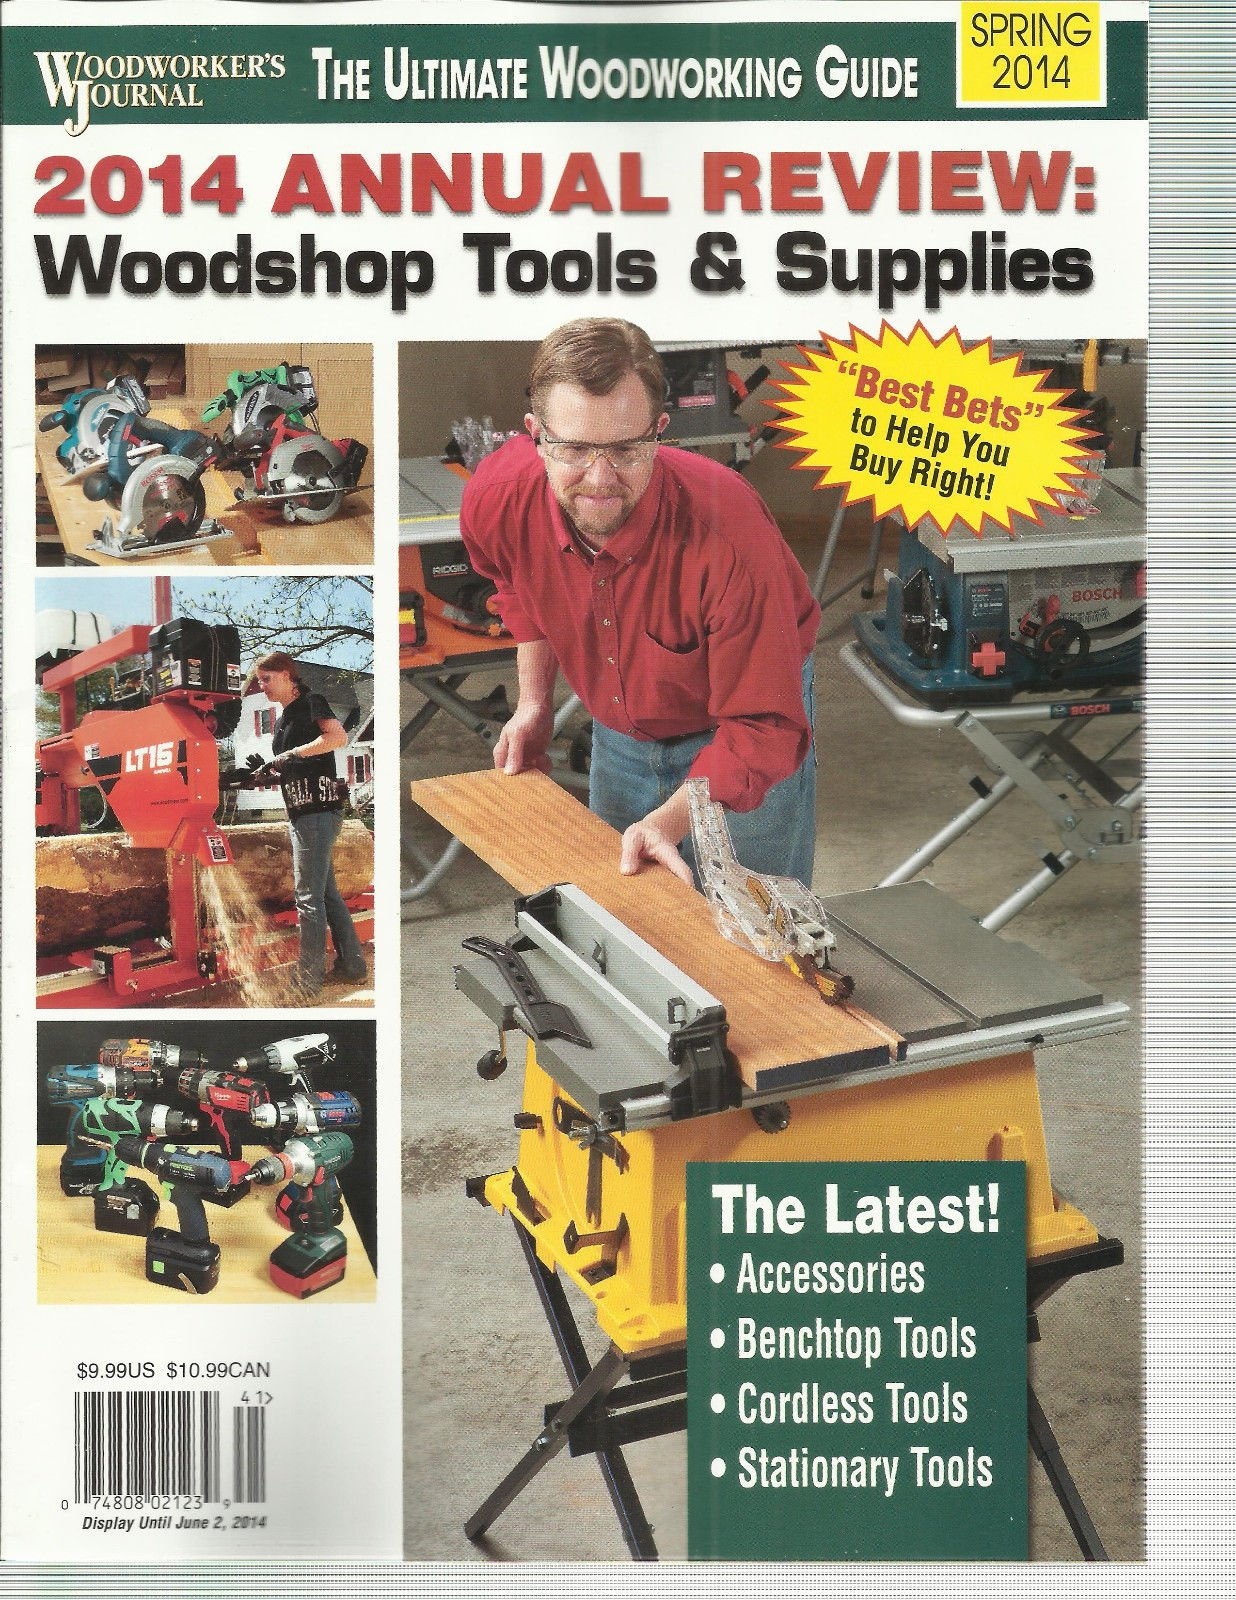 WOOD WORKER'S JOURNAL, 2014 ANNUAL REVIEW WOODSHOP TOOLS & SUPPLIES SPRING,2014